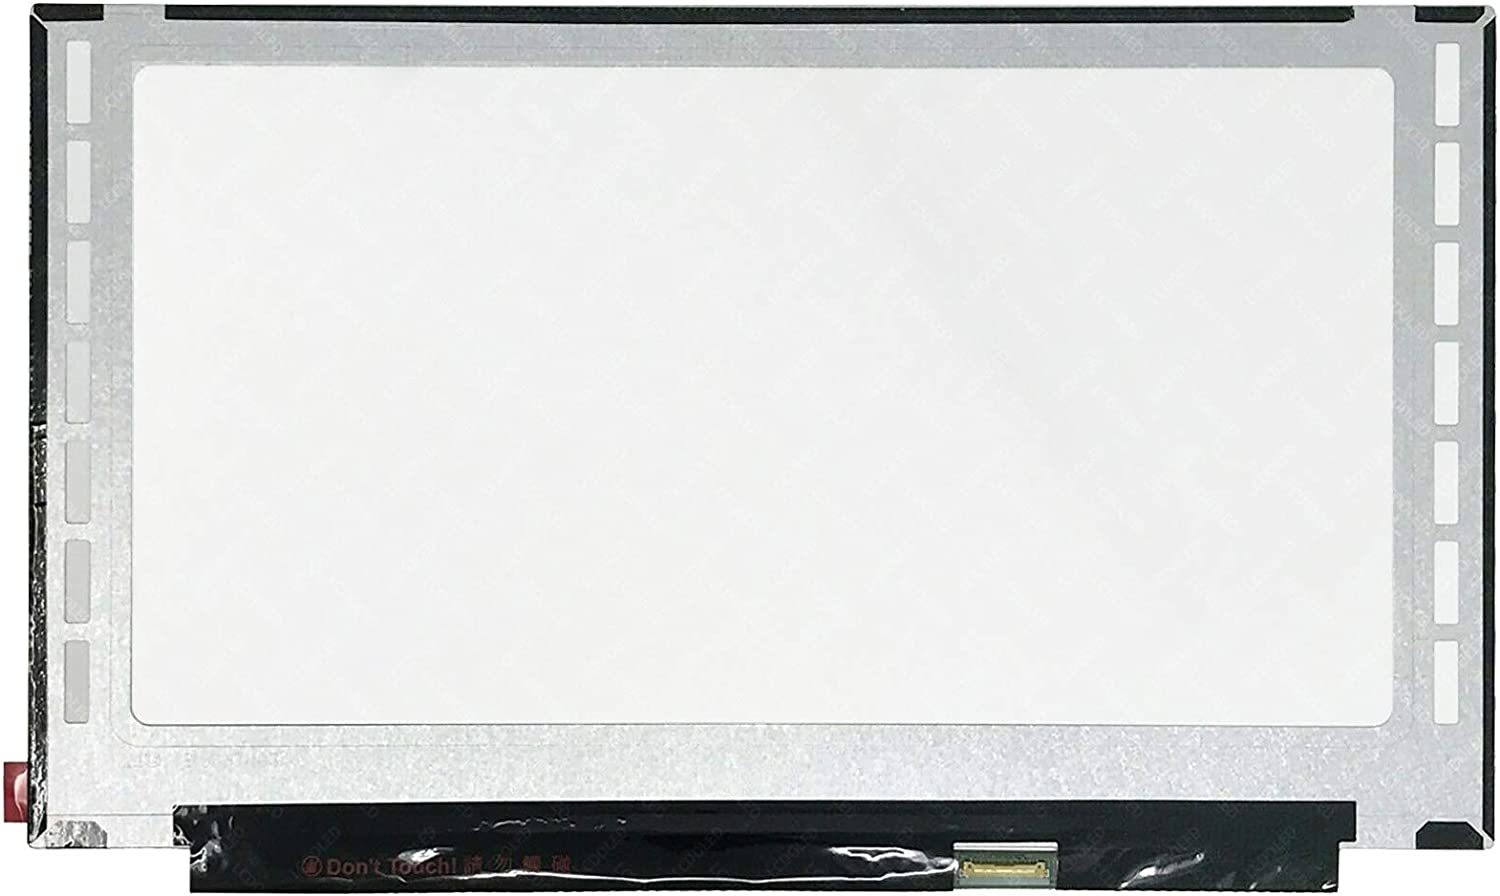 LCDOLED Compatible with NT156WHM-T02 15.6 inches HD 1366x768 40Pins LED LCD Display On-Cell Touch Screen Assembly Replacement